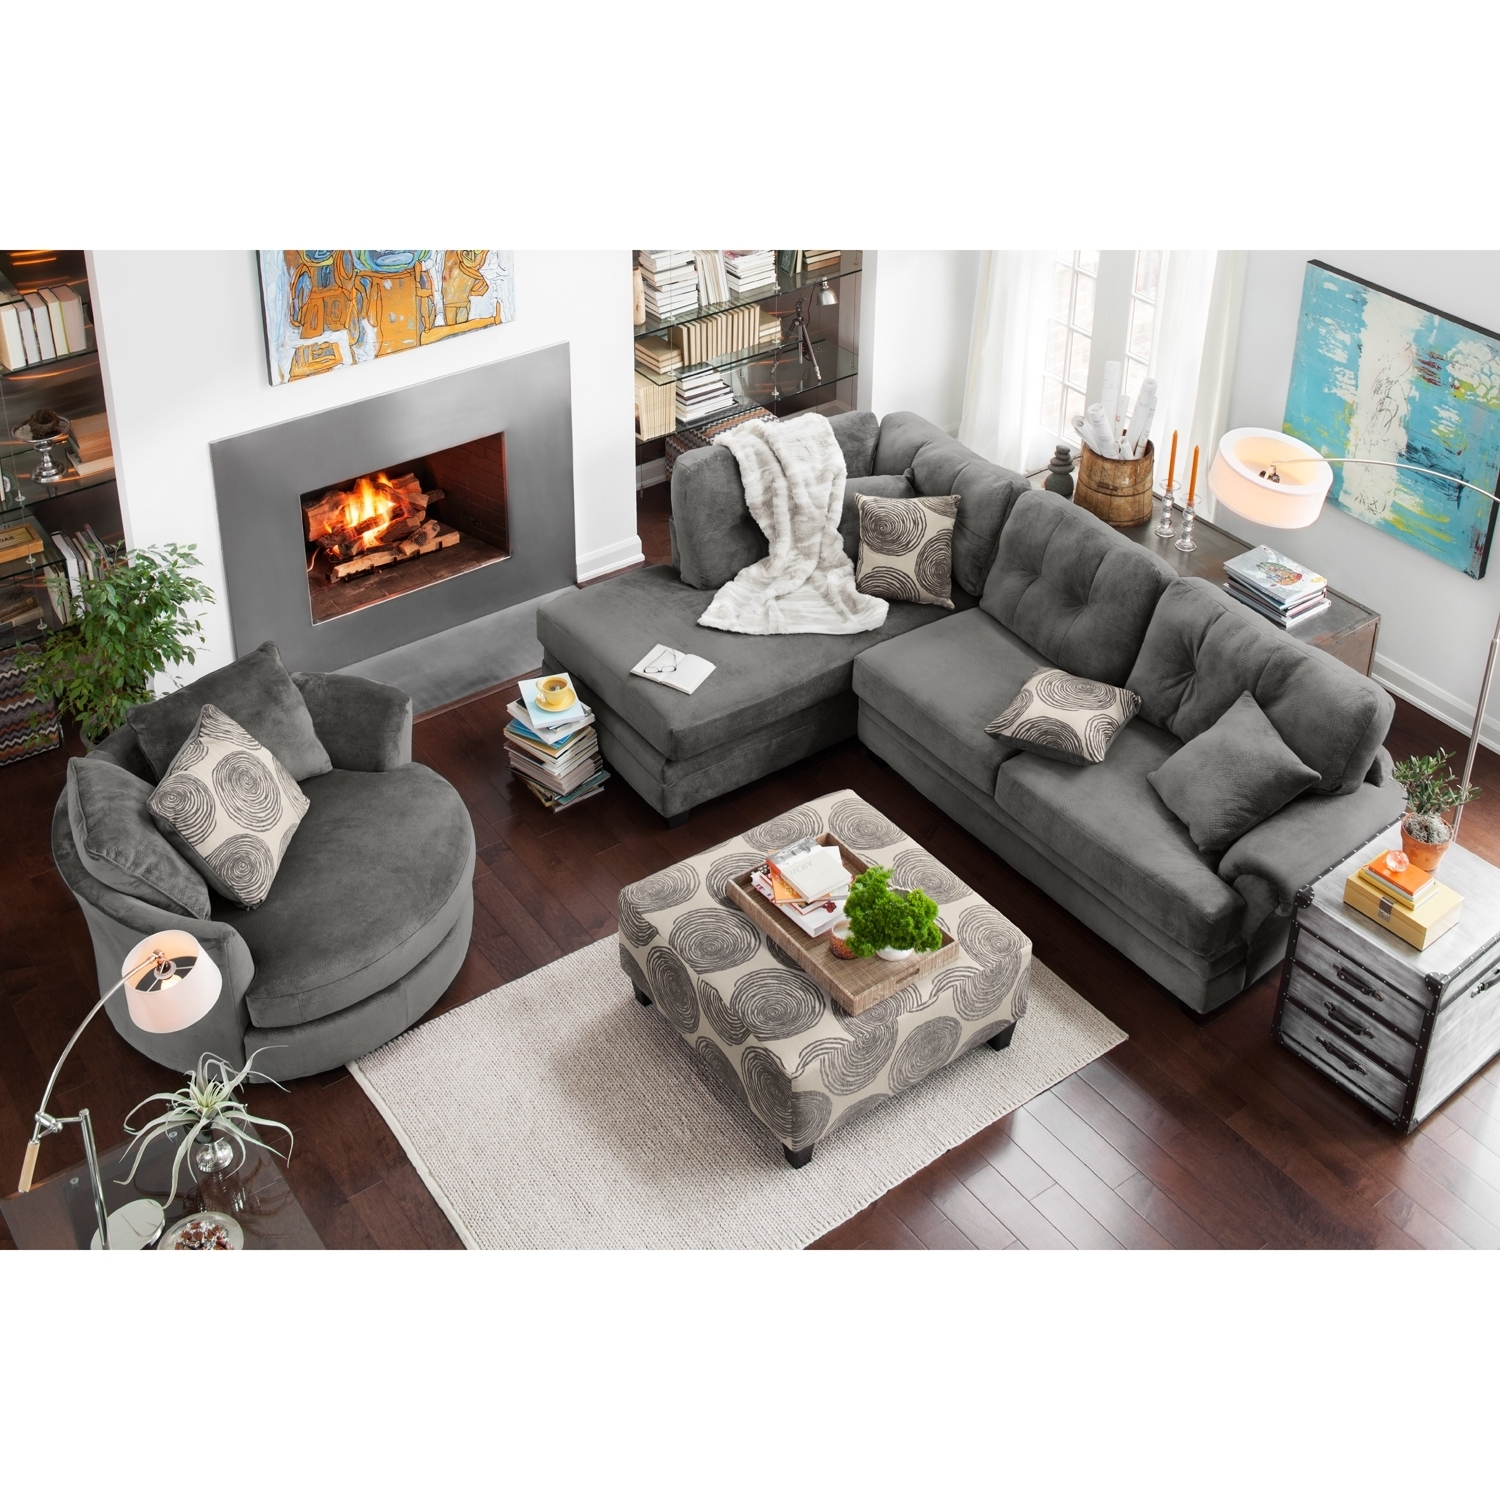 2017 Furniture: Mesmerizing Costco Sectionals Sofa For Cozy Living Room With Grey Sectionals With Chaise (View 1 of 15)